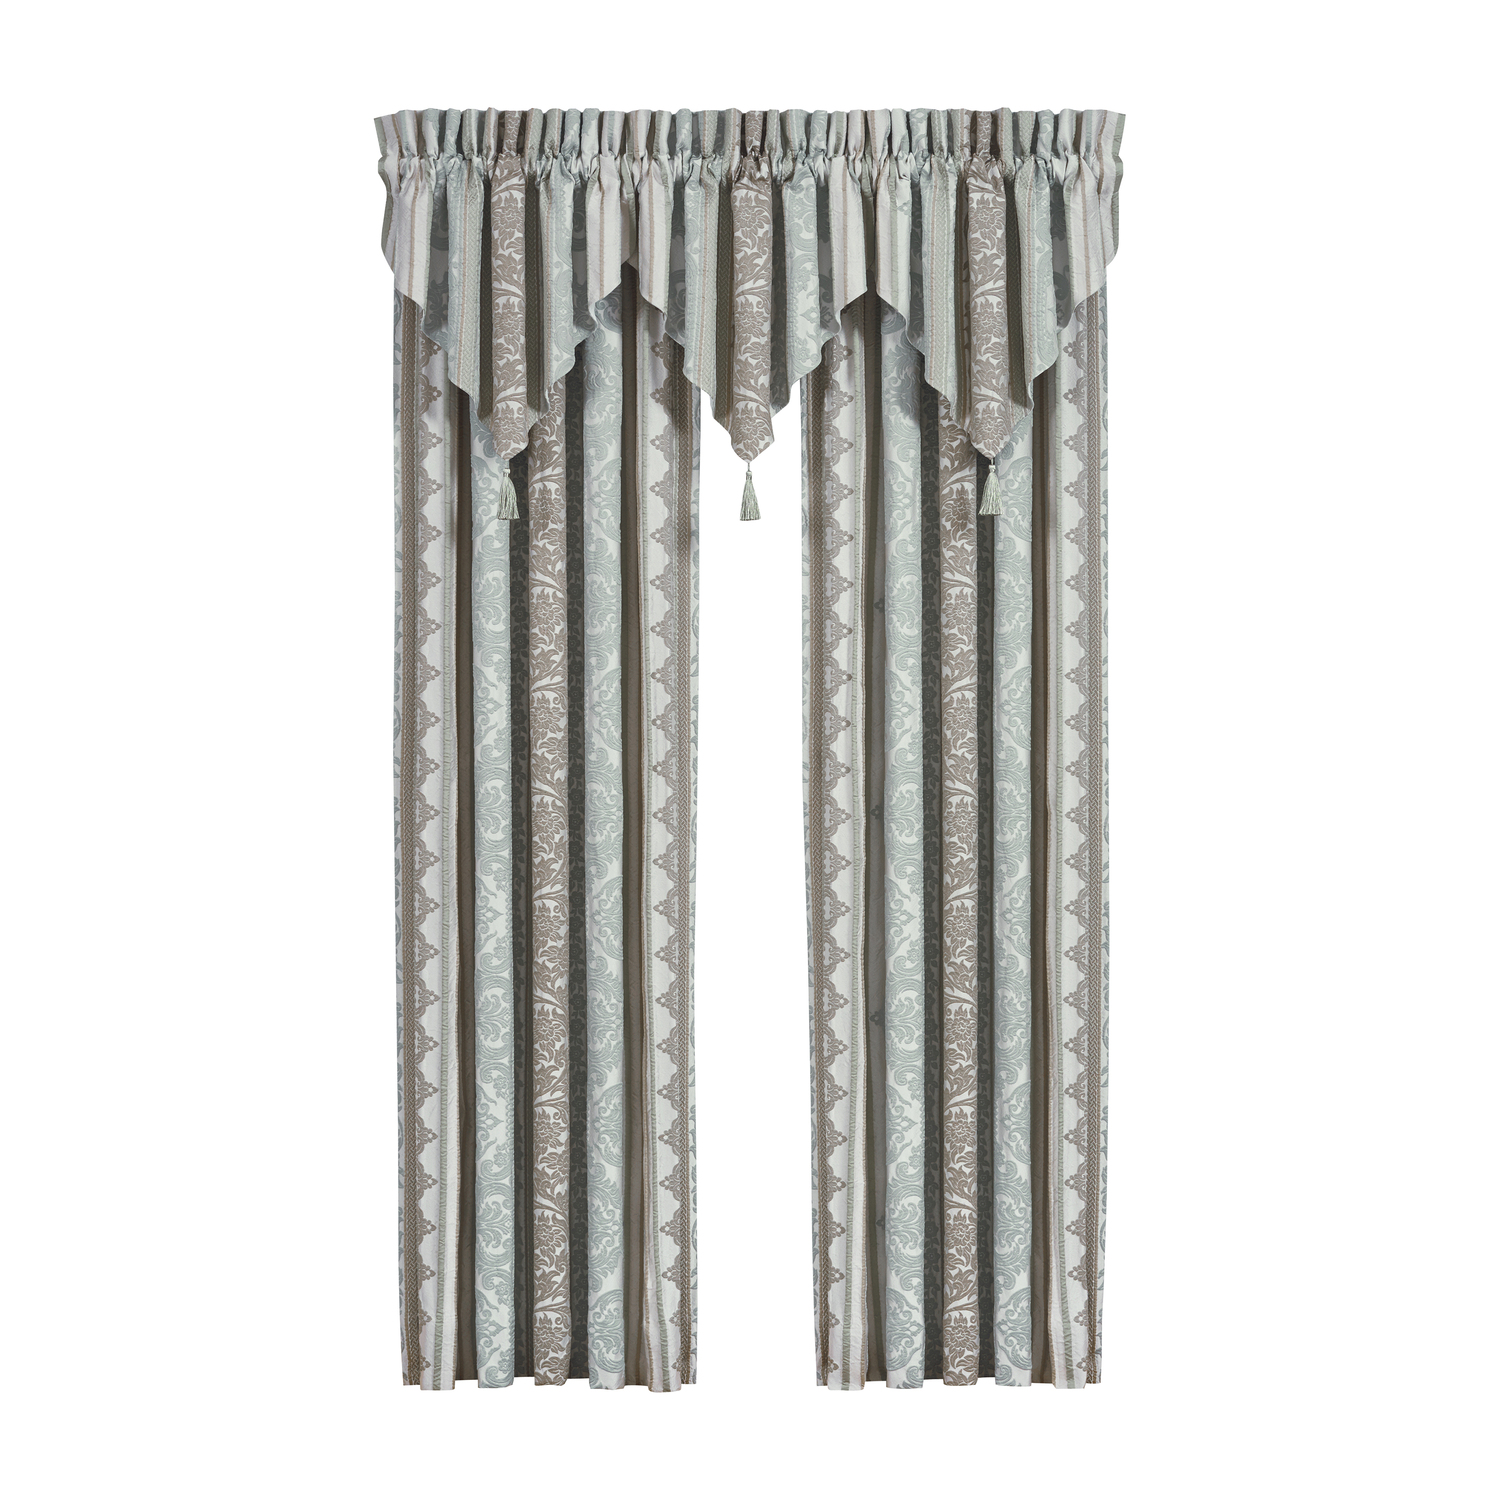 lace at nice valance and kitchen new valances drapes jcp attractive sears of jcpenney shari curtains adorable jcpenneyeer panels modern ascot curtain blind